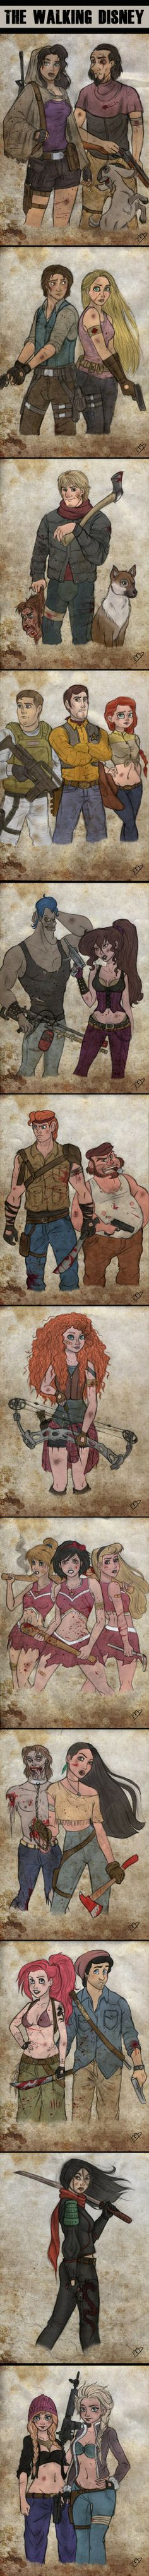 Walking Dead / Disney